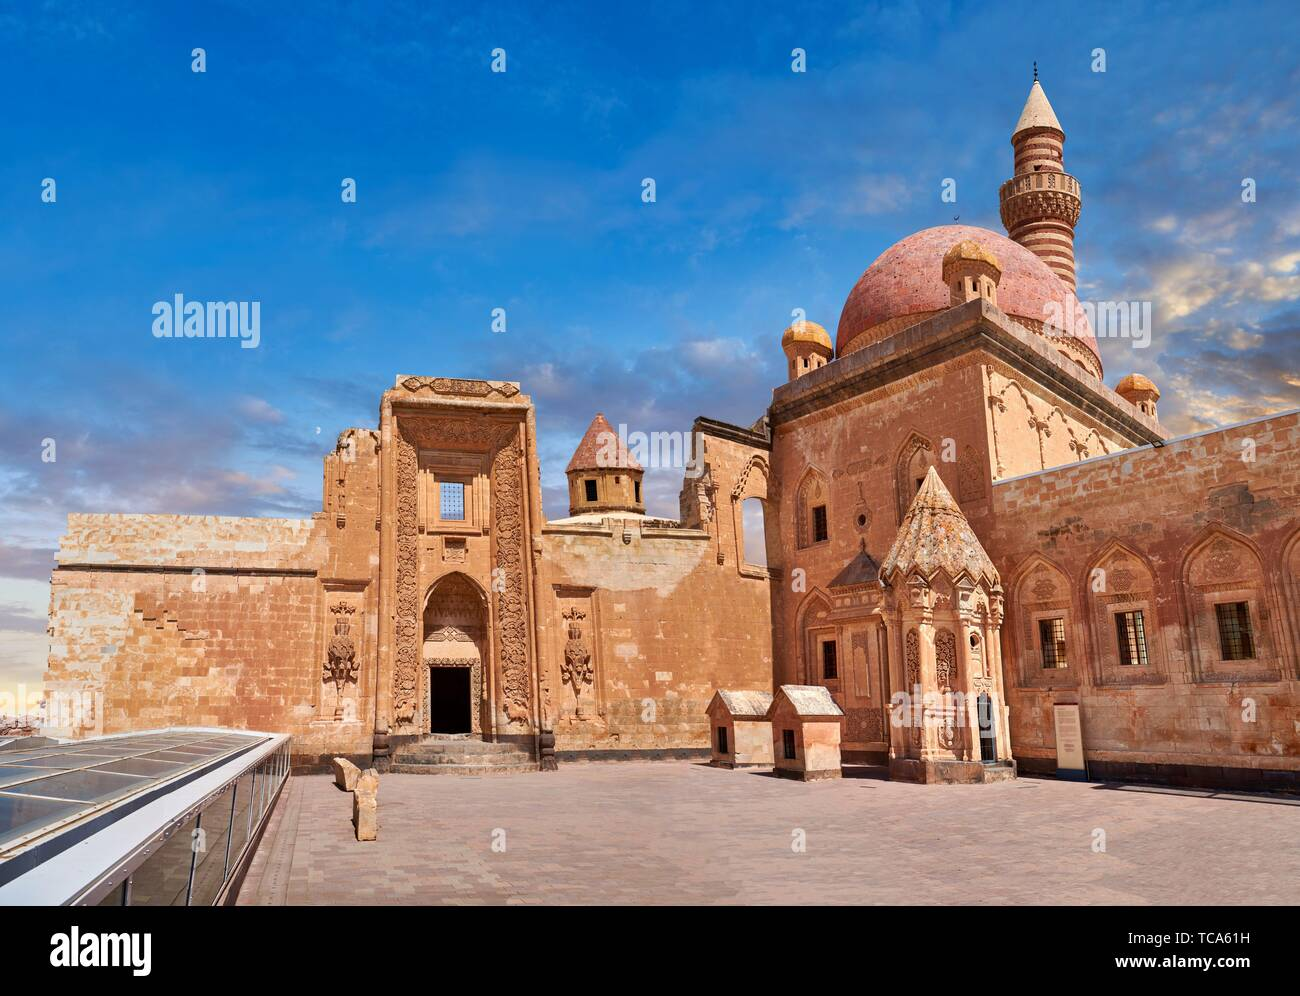 Courtyard of the 18th Century Ottoman architecture of the Ishak Pasha Palace (Turkish: ?shak Pa?a Saray?) , A?r? province of eastern Turkey. Stock Photo